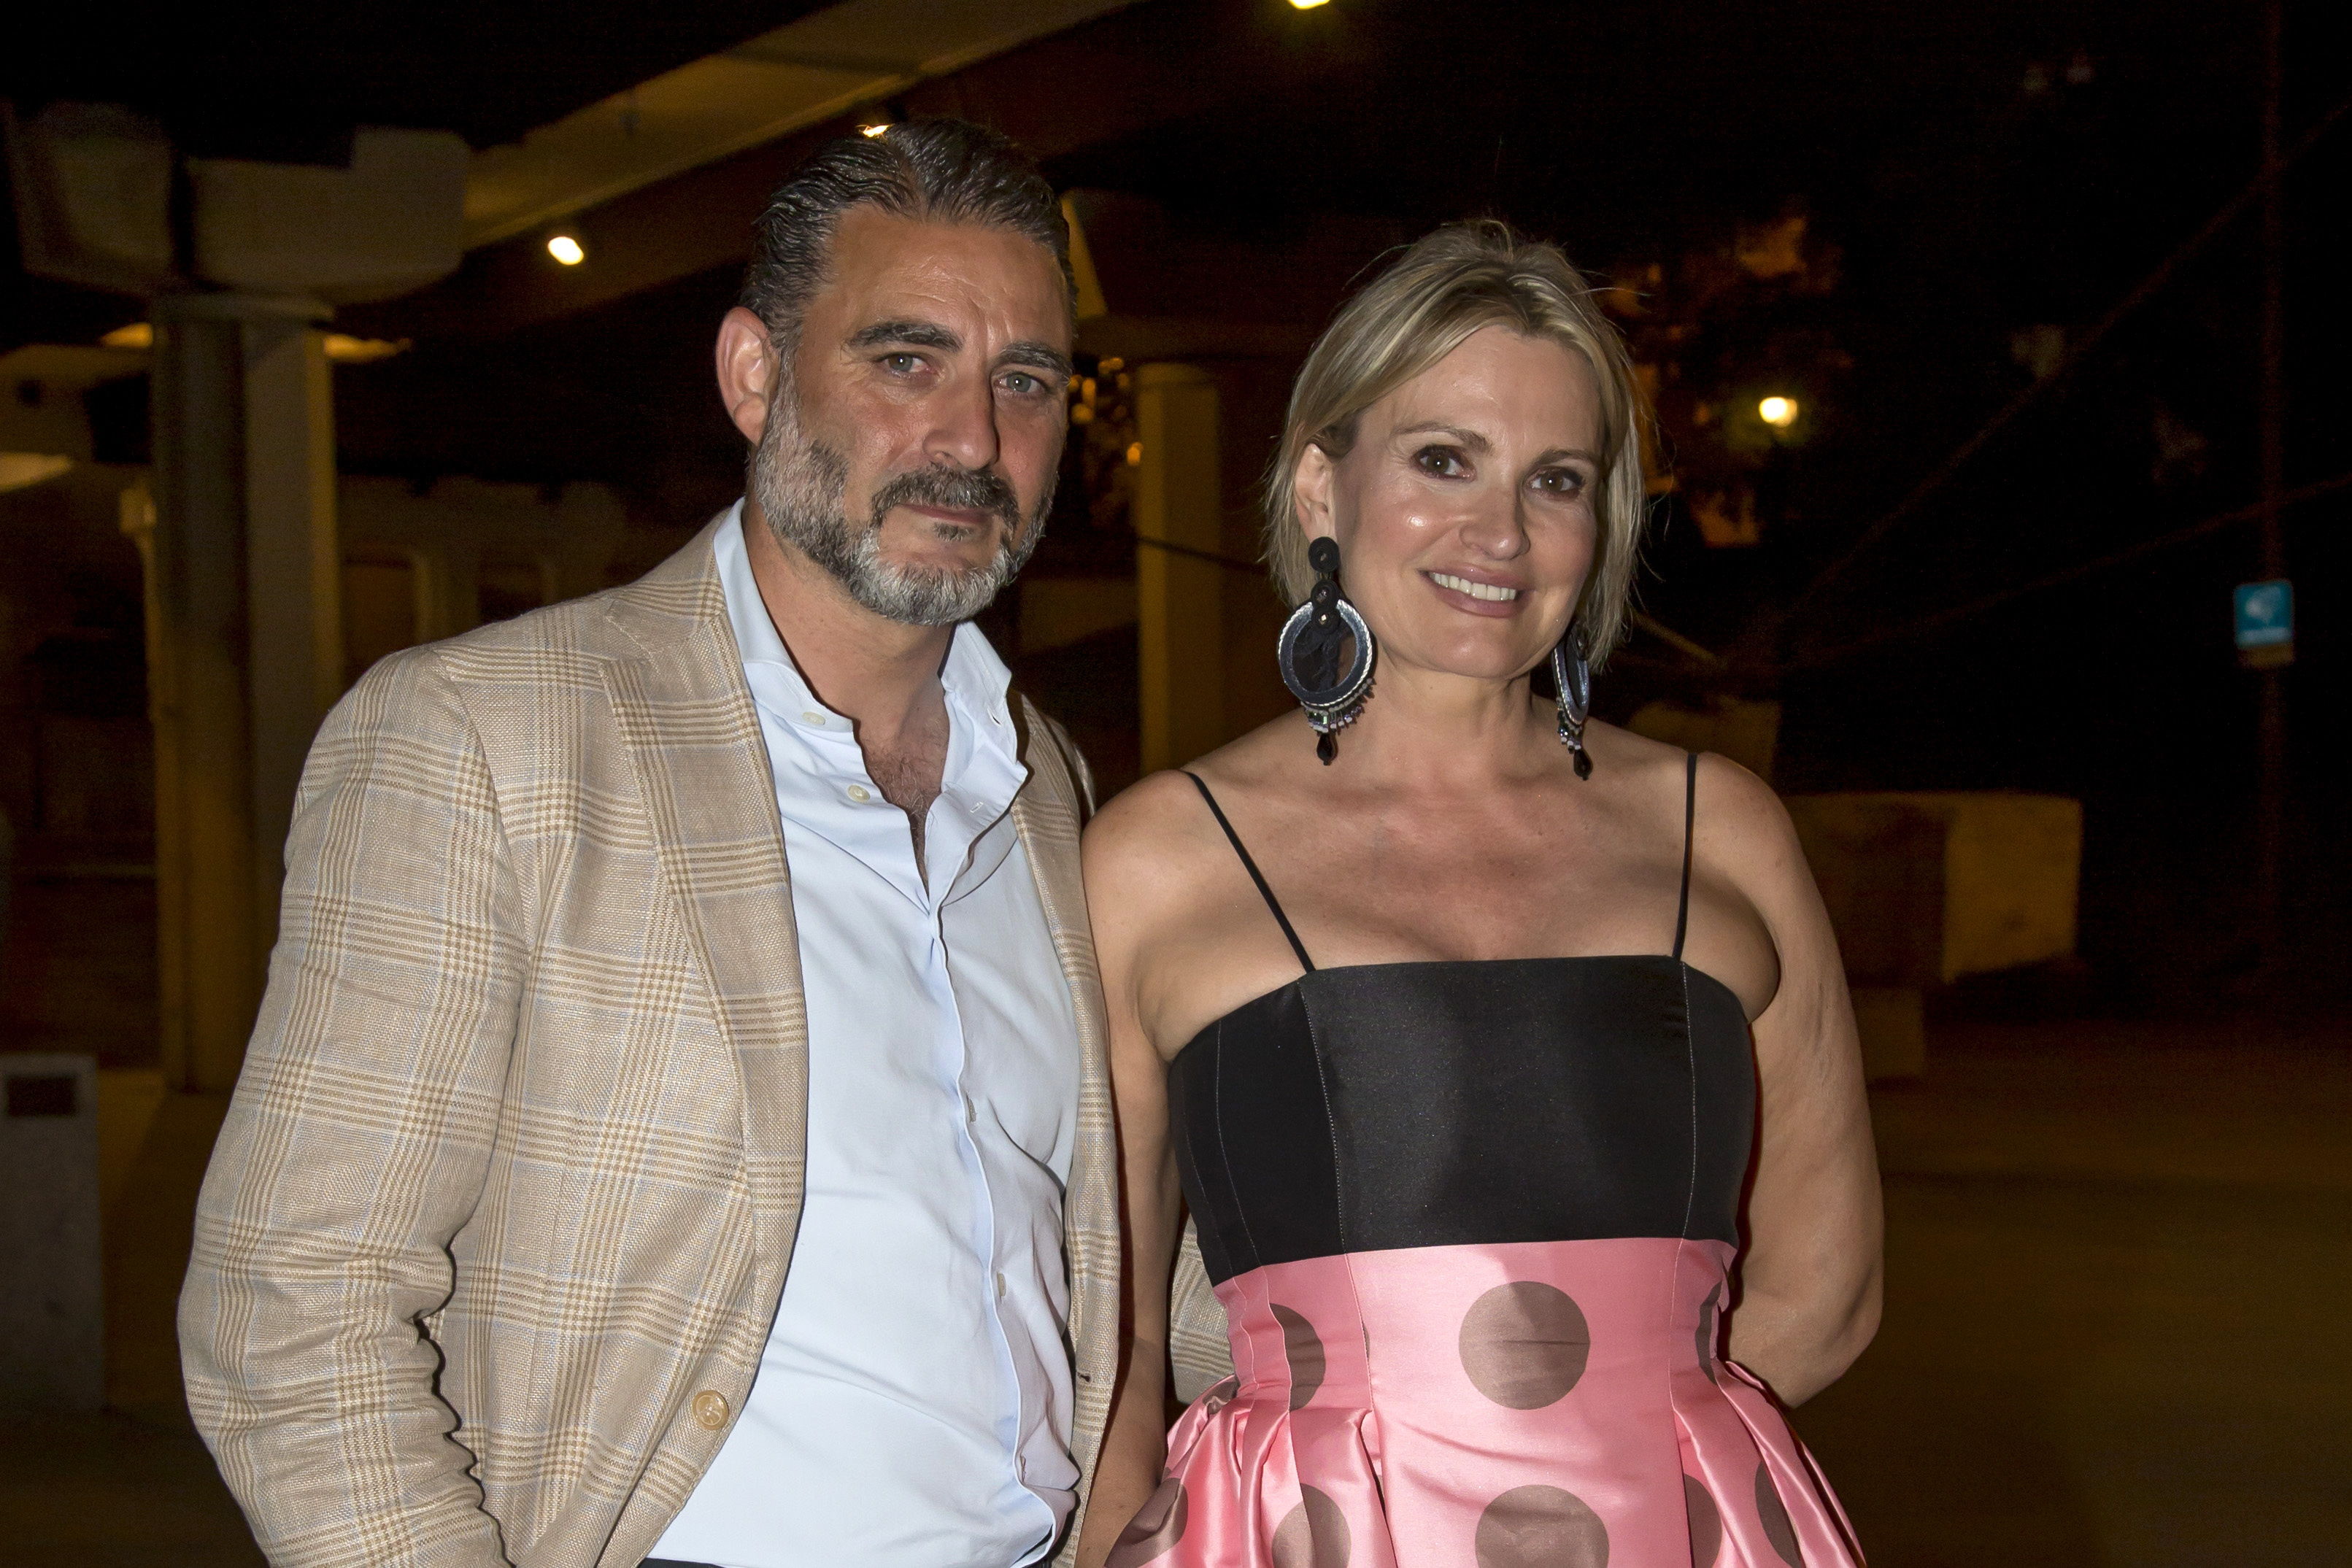 Ainhoa Arteta and Maías Urrea leave the dinner in honor of French photographer Jean-Daniel Lorieux after presenting his exhibition on the occasion of Oceans Day, June 7, 2021, in Madrid, Spain.